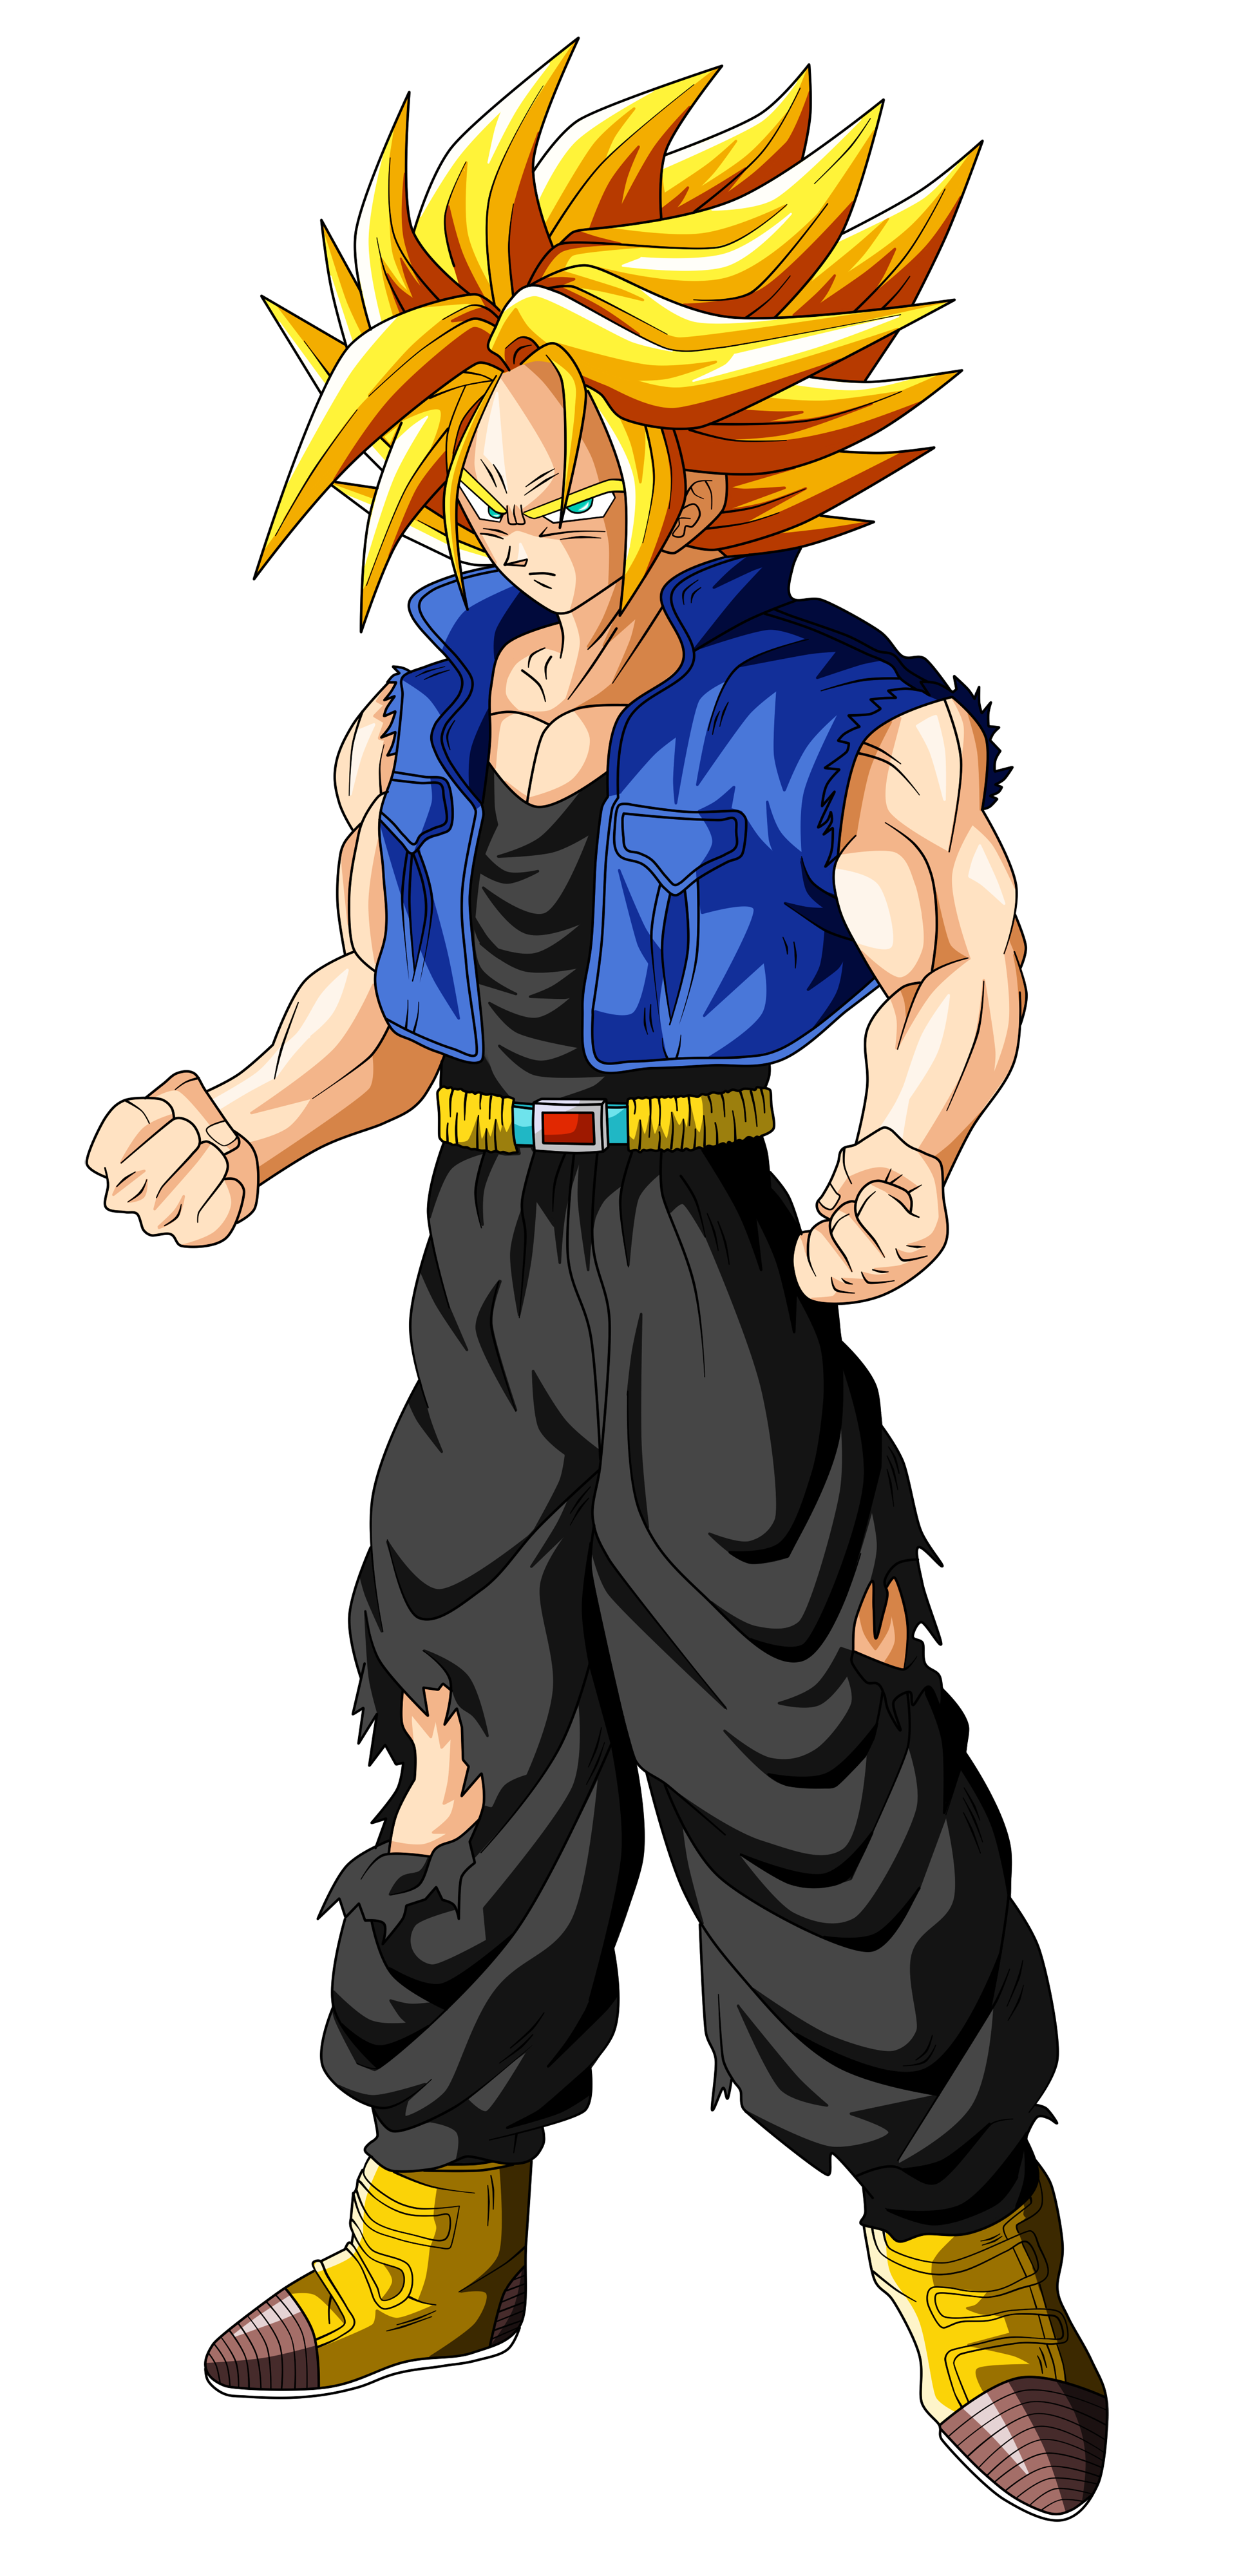 Image search: Trunks